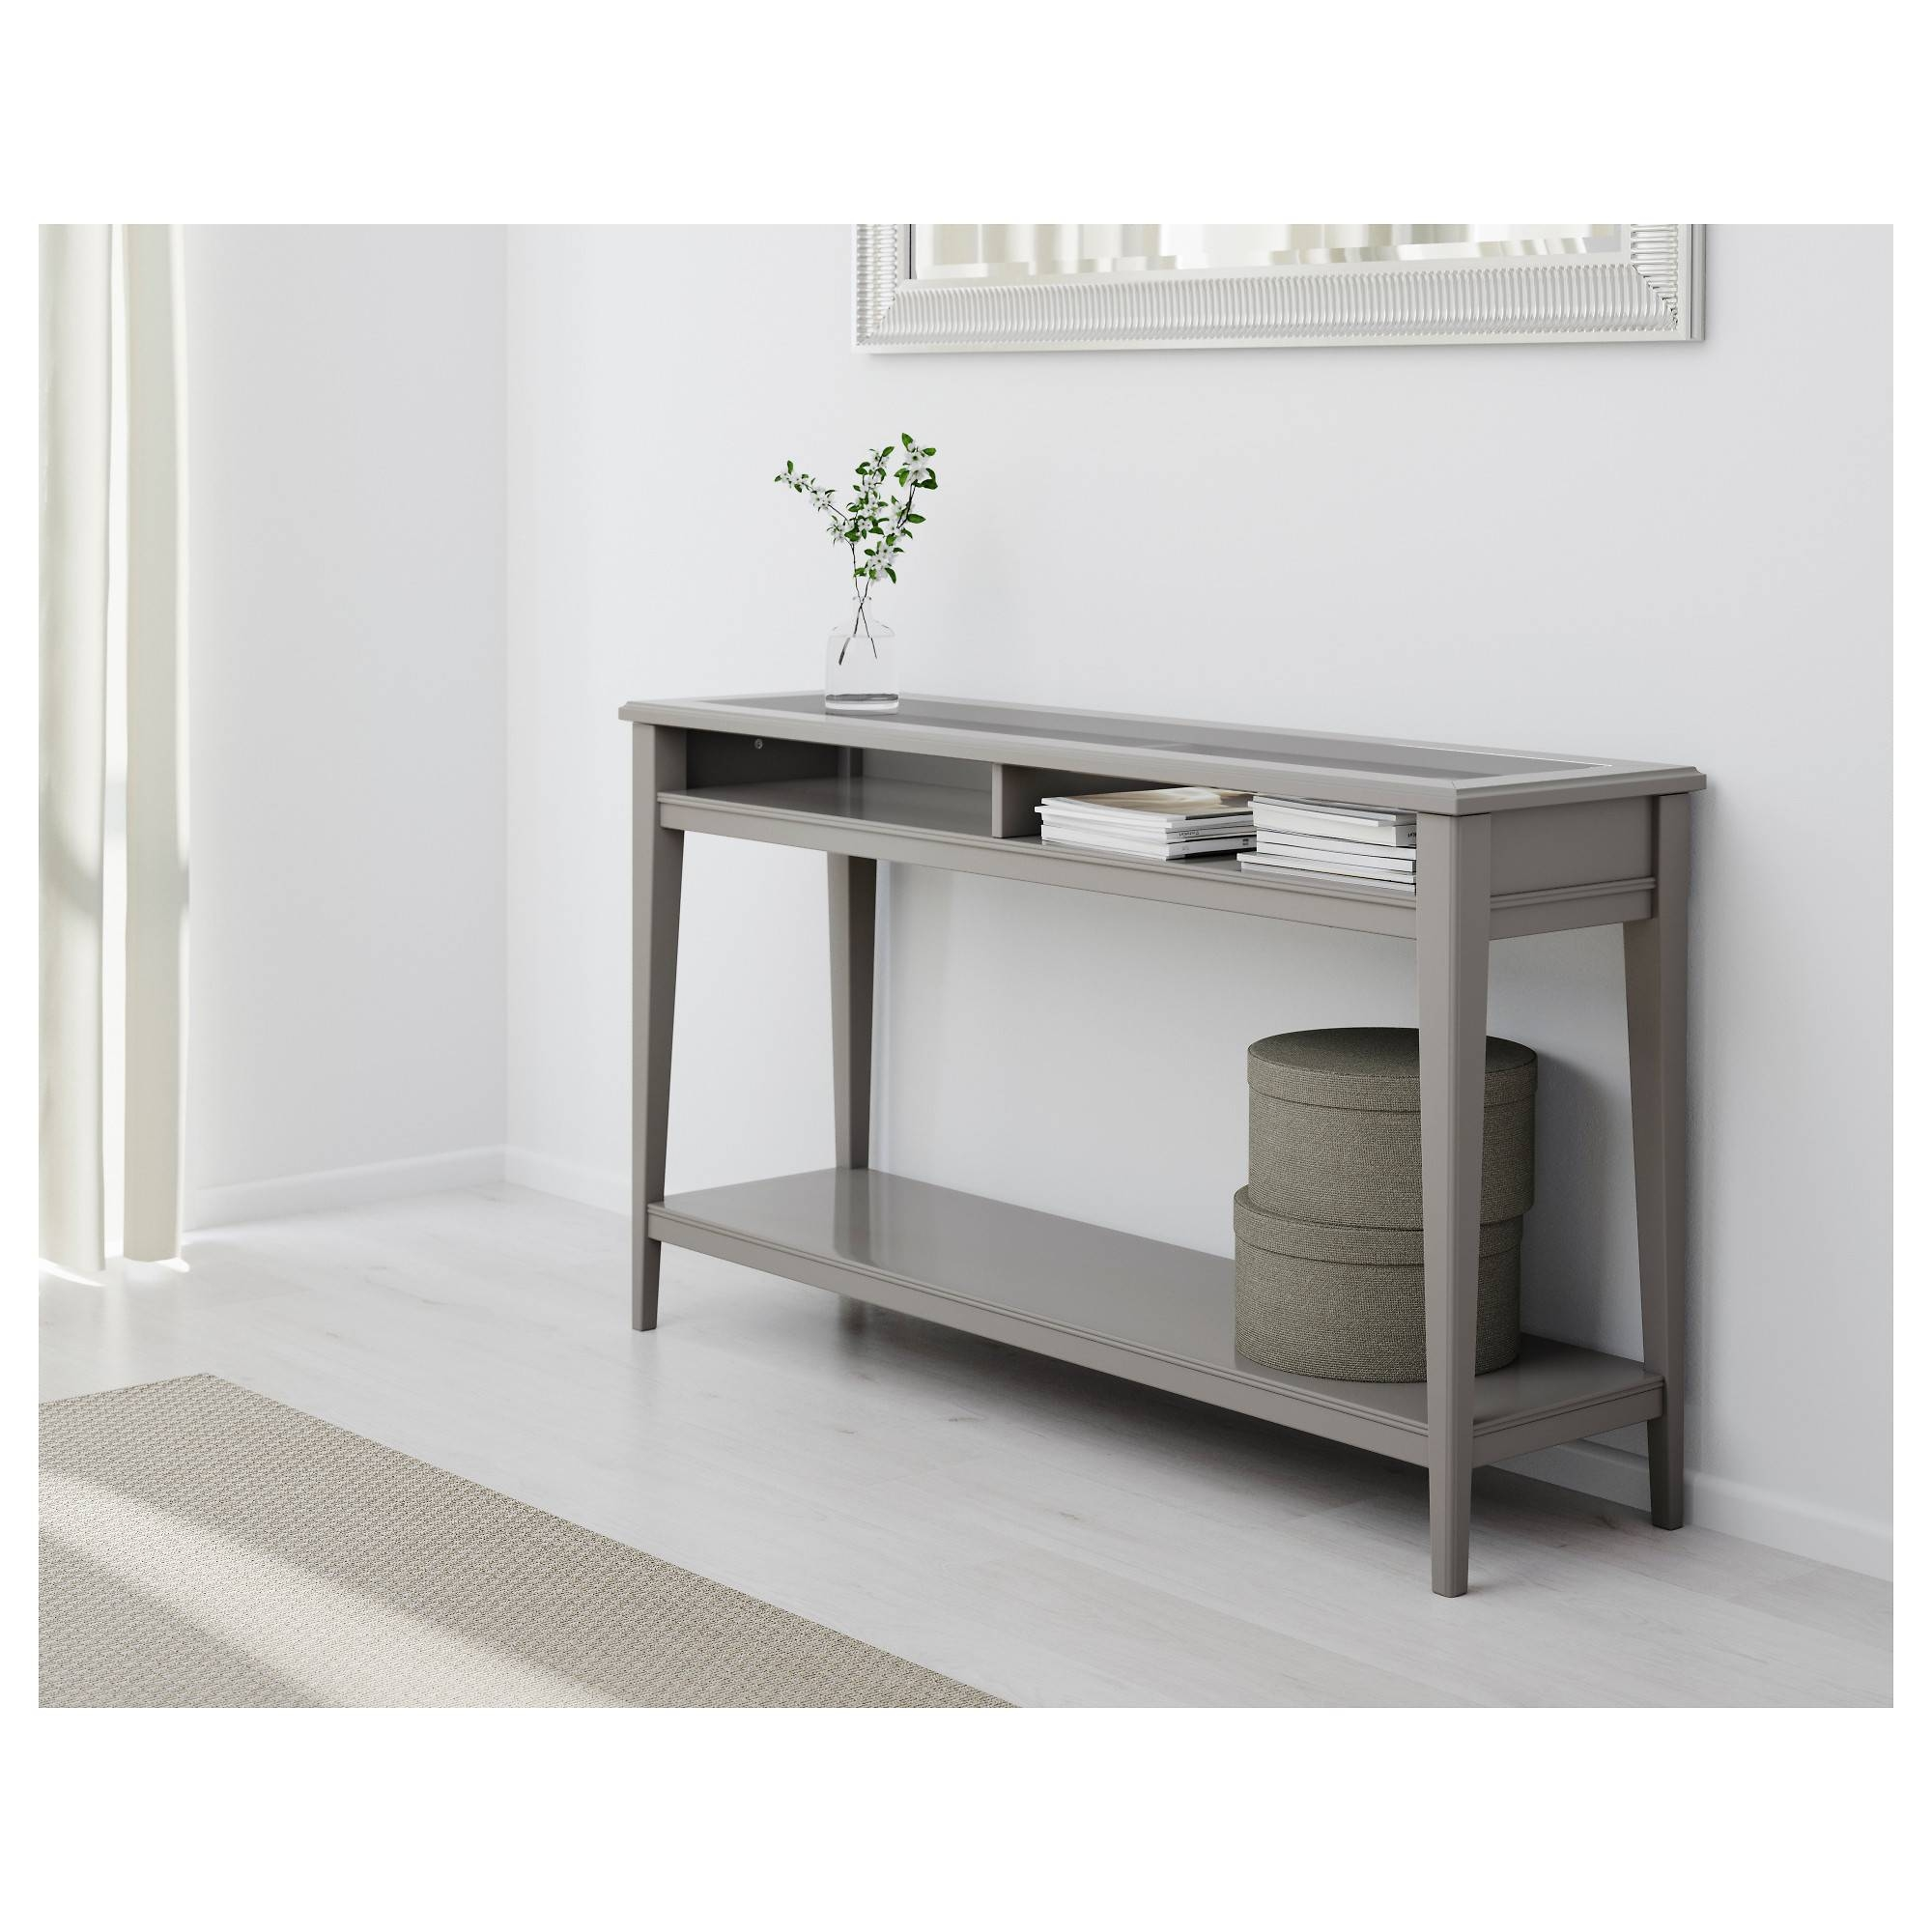 Liatorp Console Table - White/glass - Ikea pertaining to Computer Sofa Tables (Image 7 of 15)